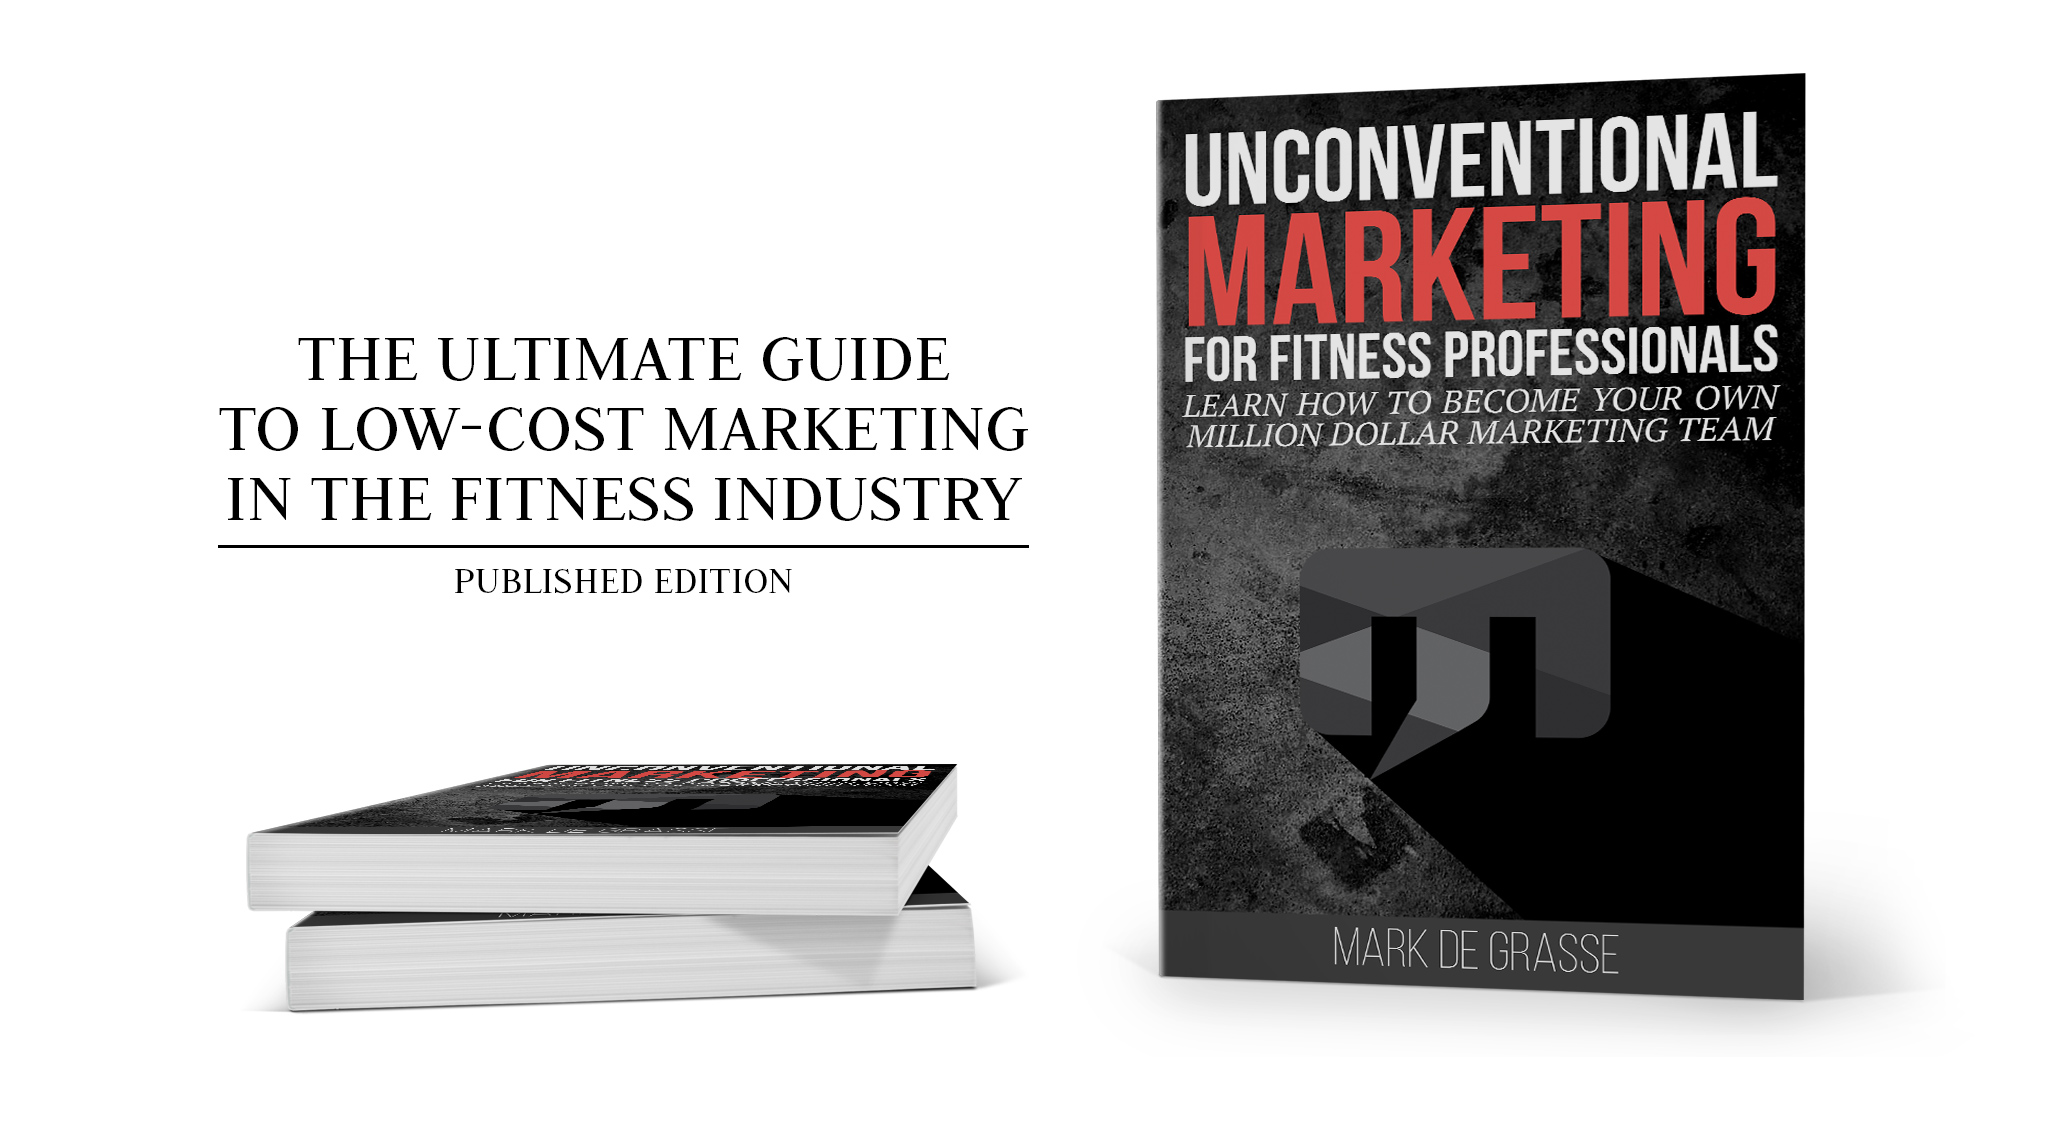 Unconventional Marketing for Fitness Professionals Book